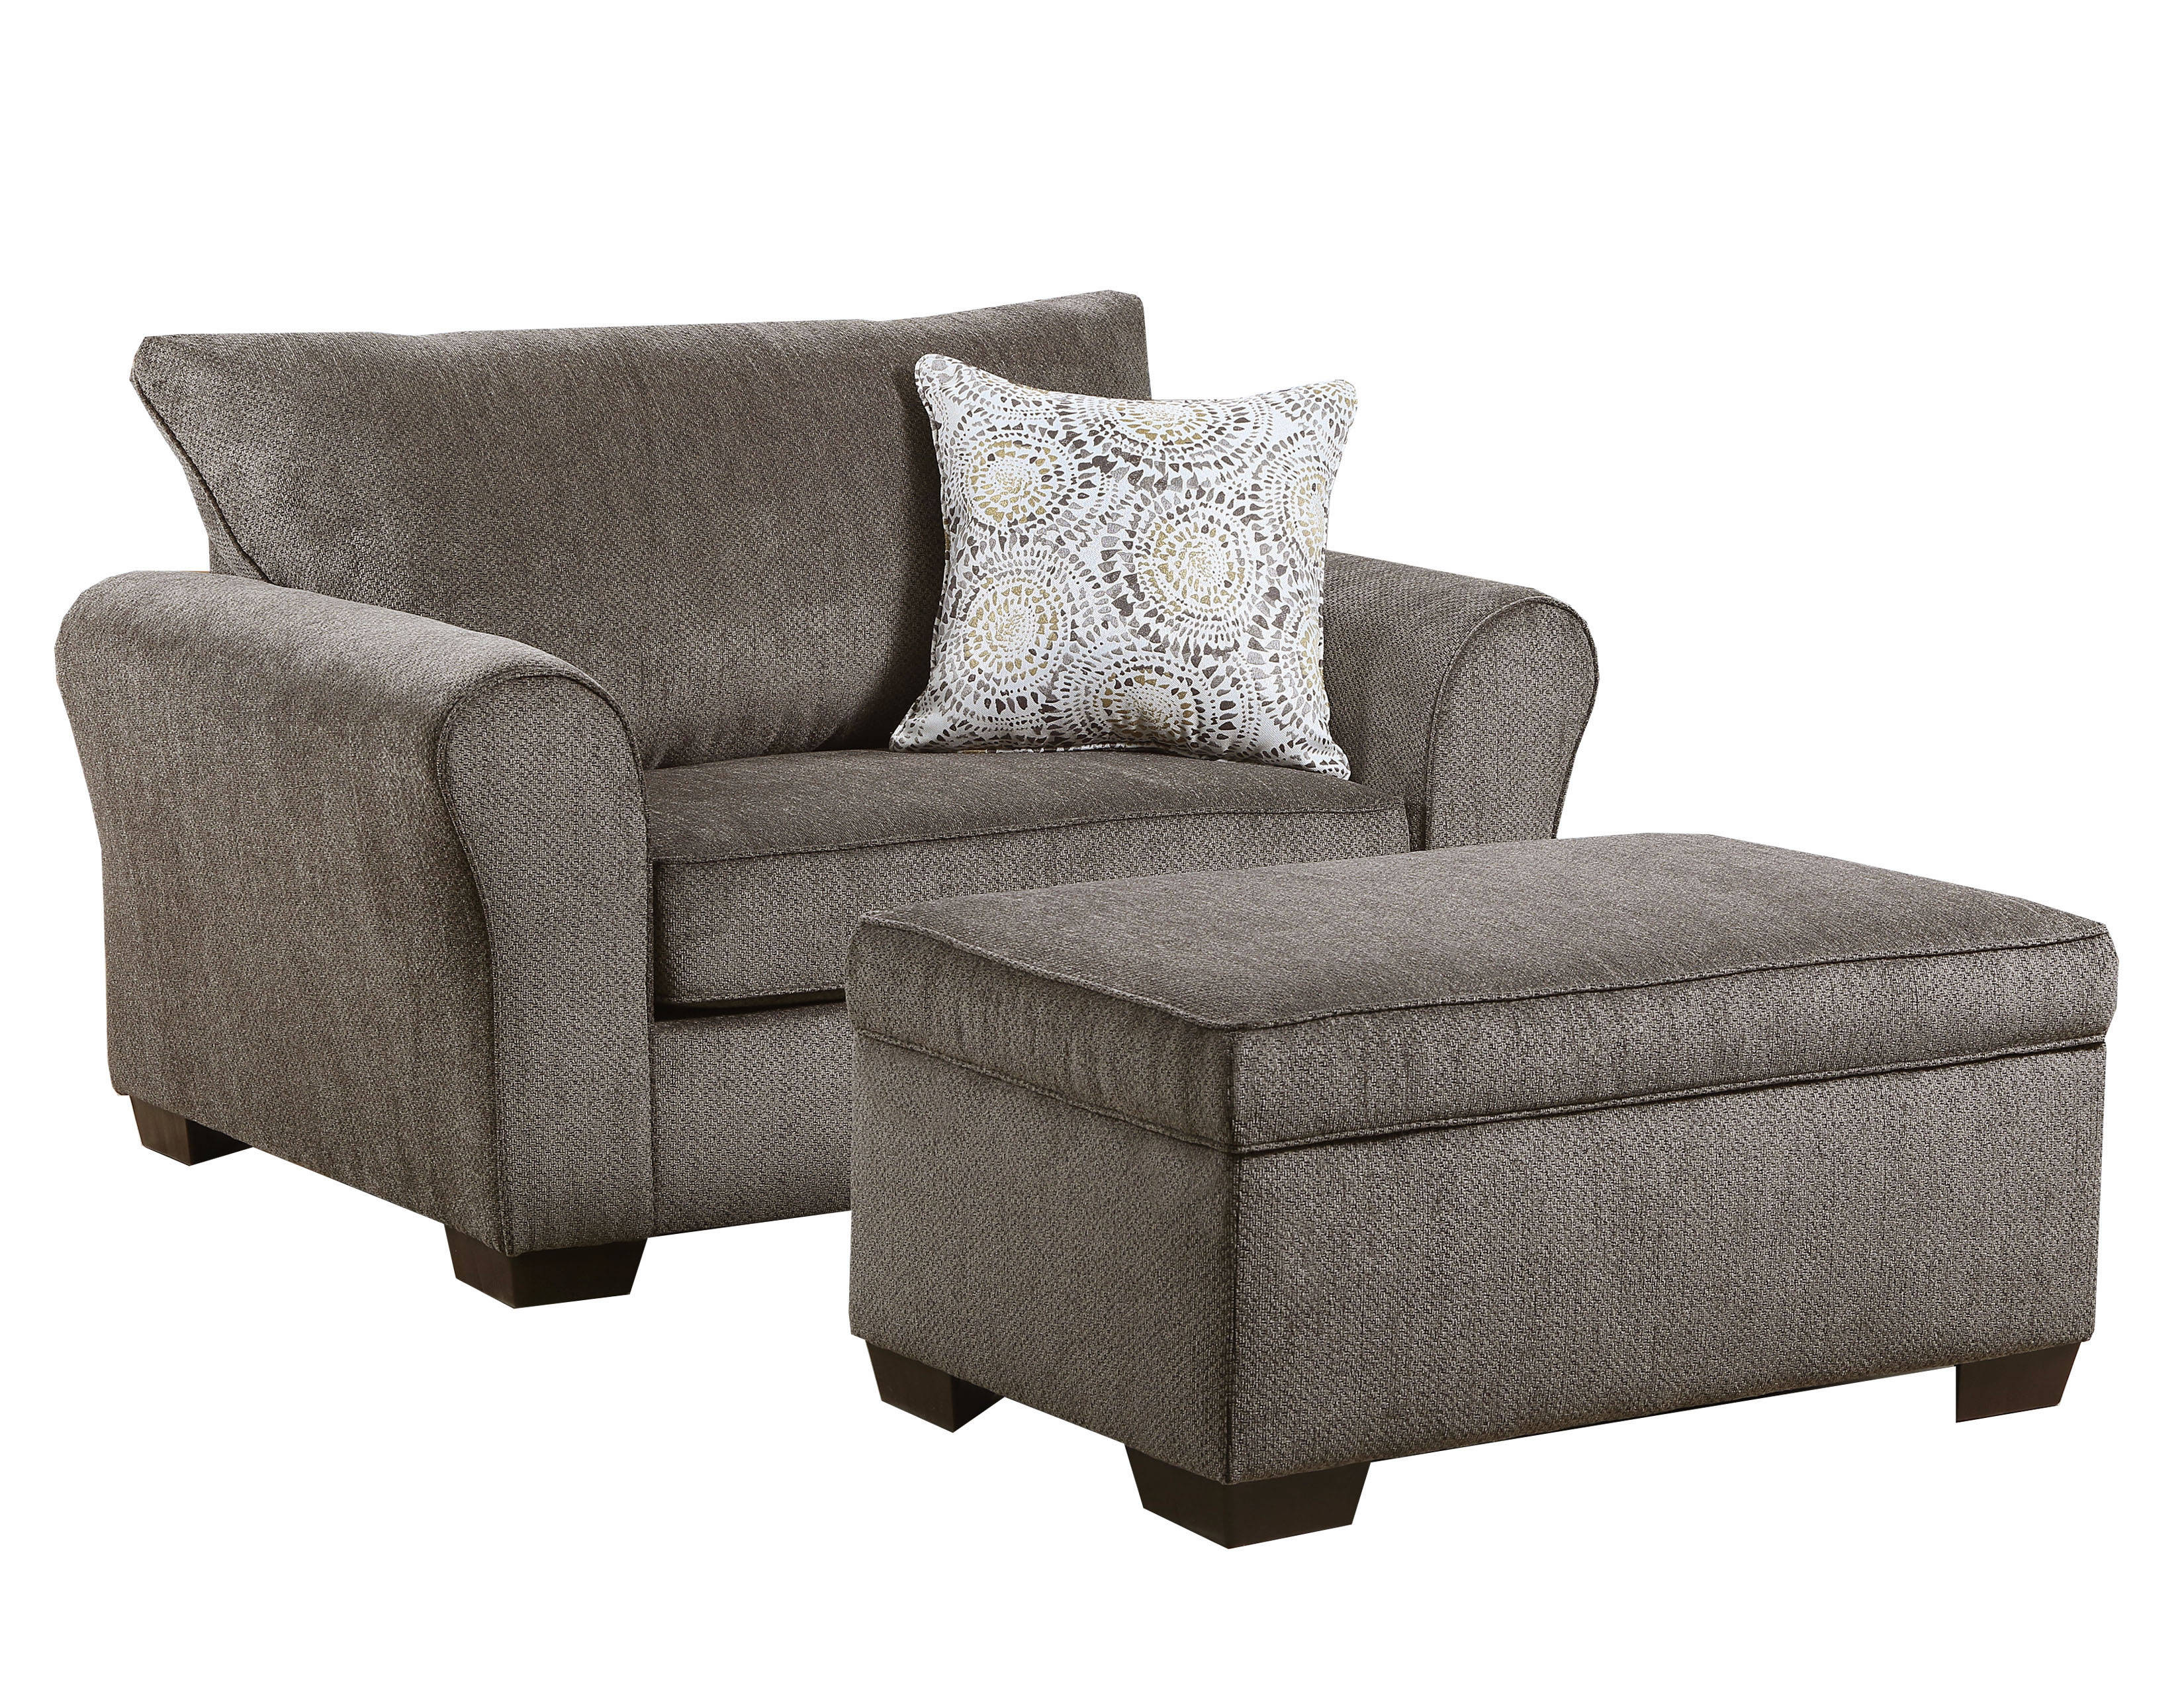 United Furniture Harlow Ash Chair And Ottoman Set The